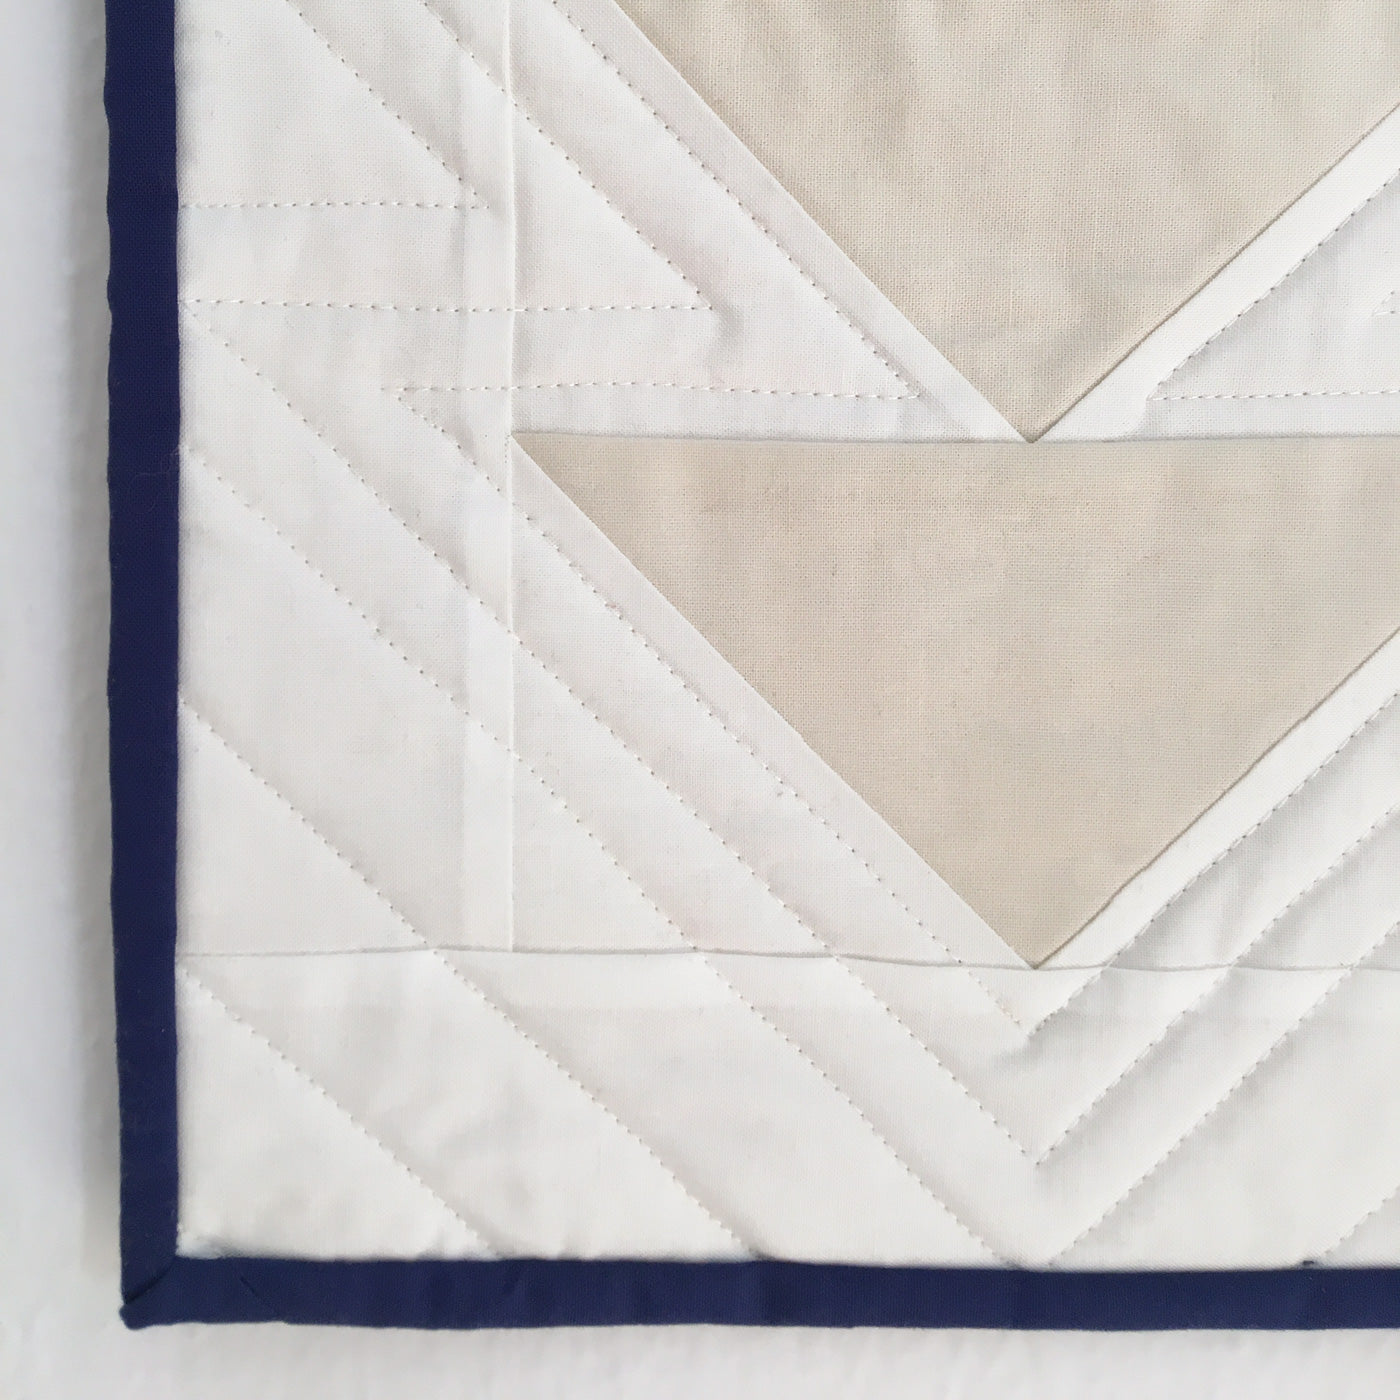 Close up of ripple effect using straight line quilting on a domestic machine